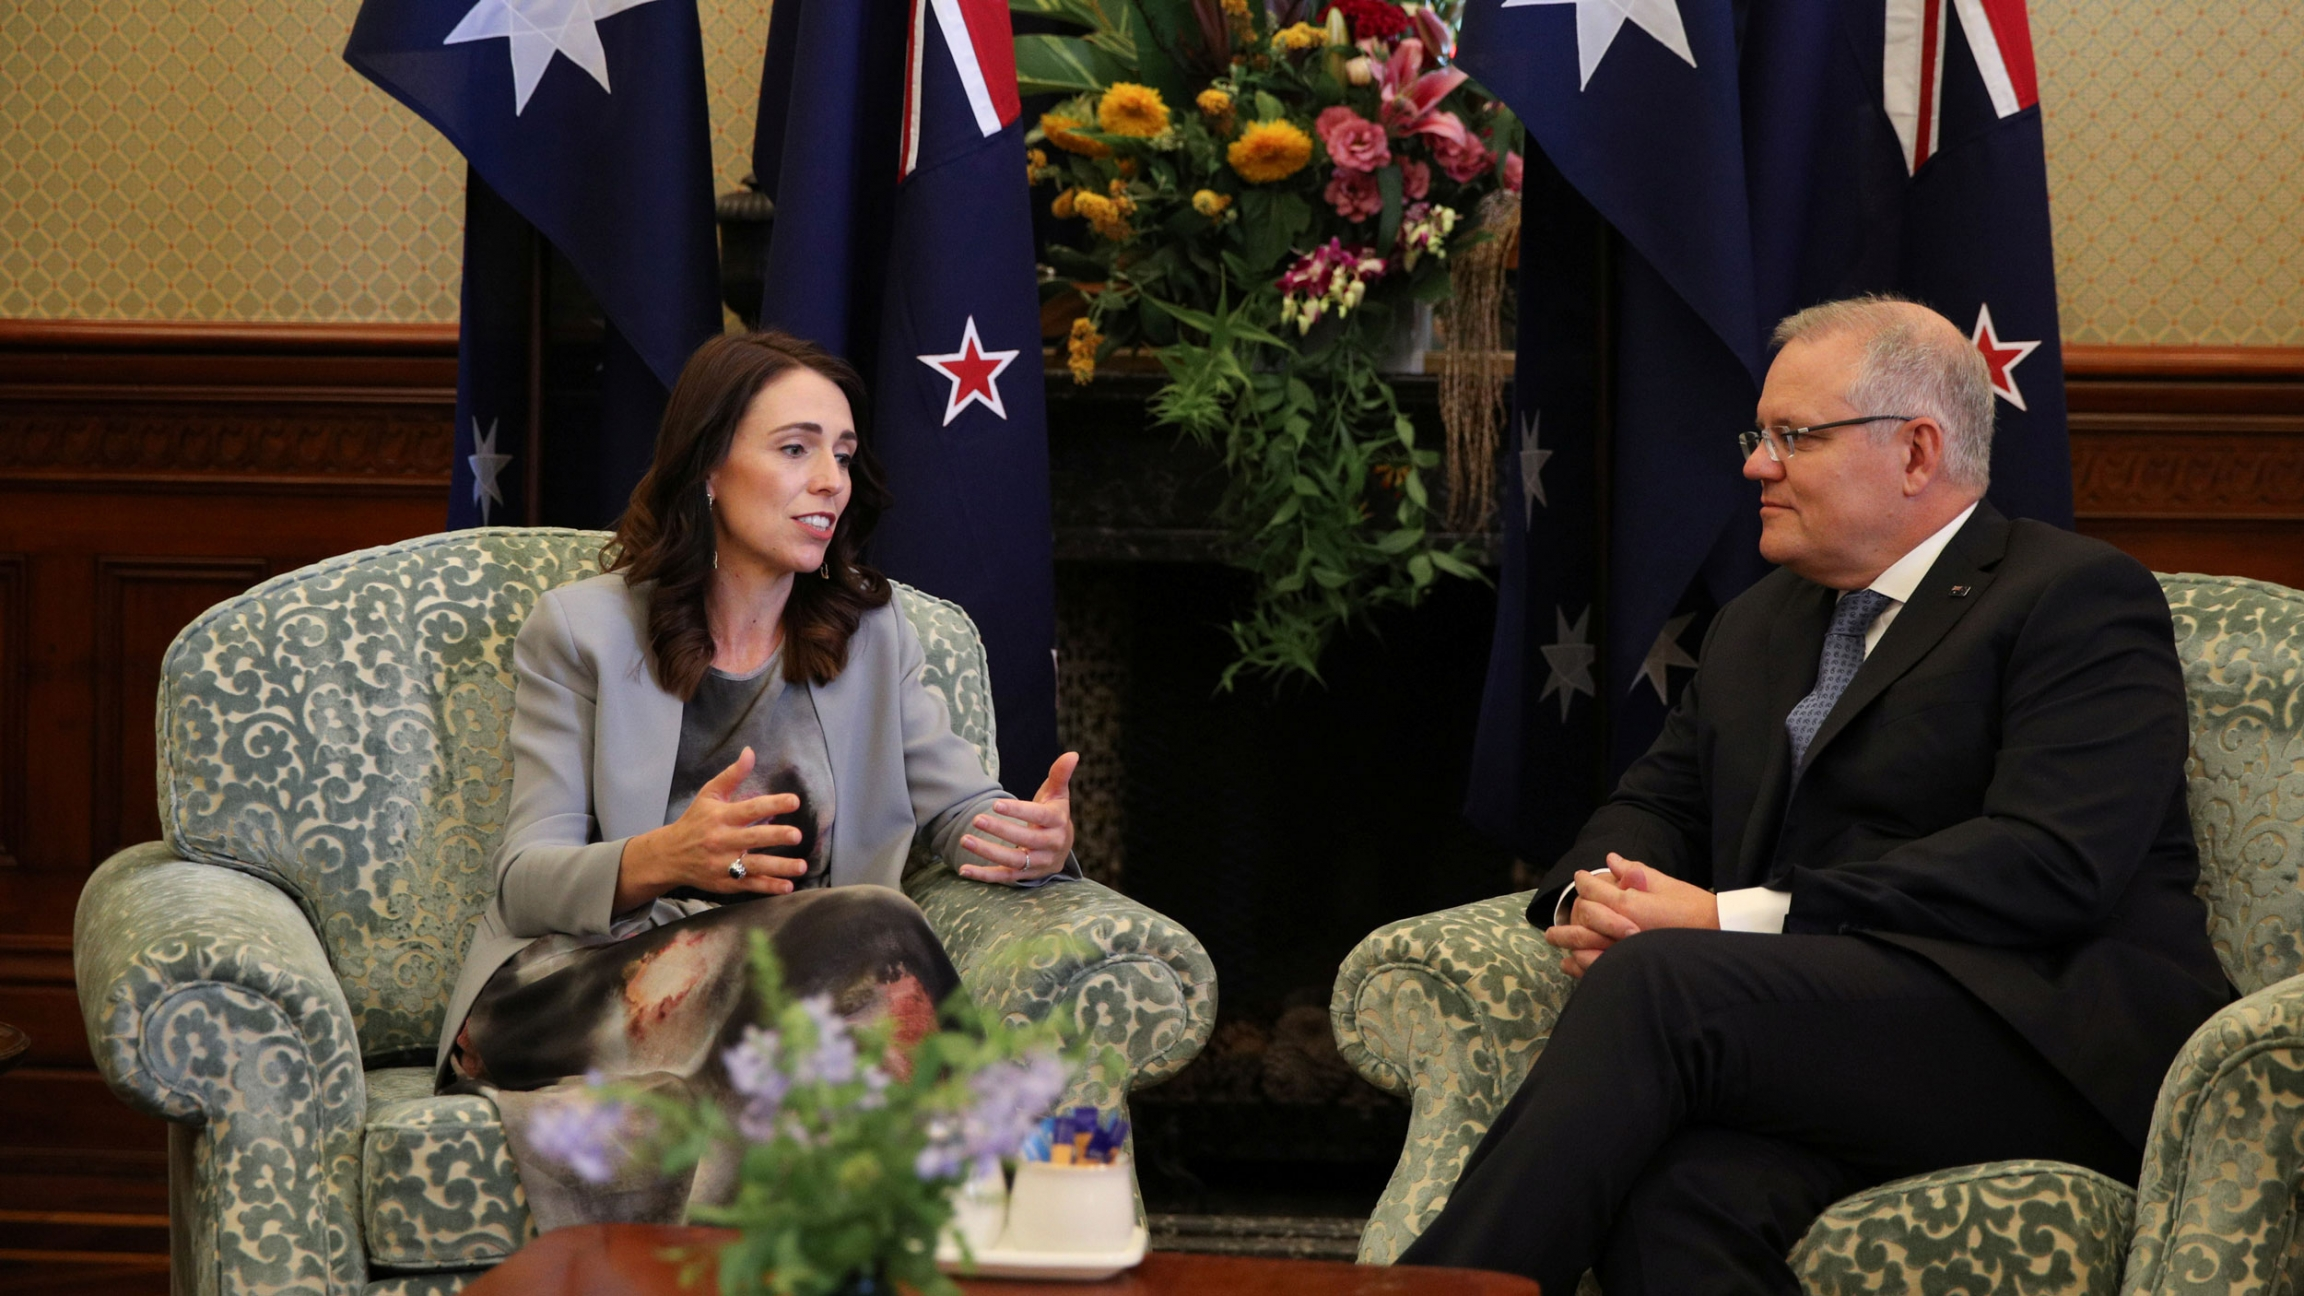 A woman and a man sit in chairs in front of the New Zealand and Australian flags